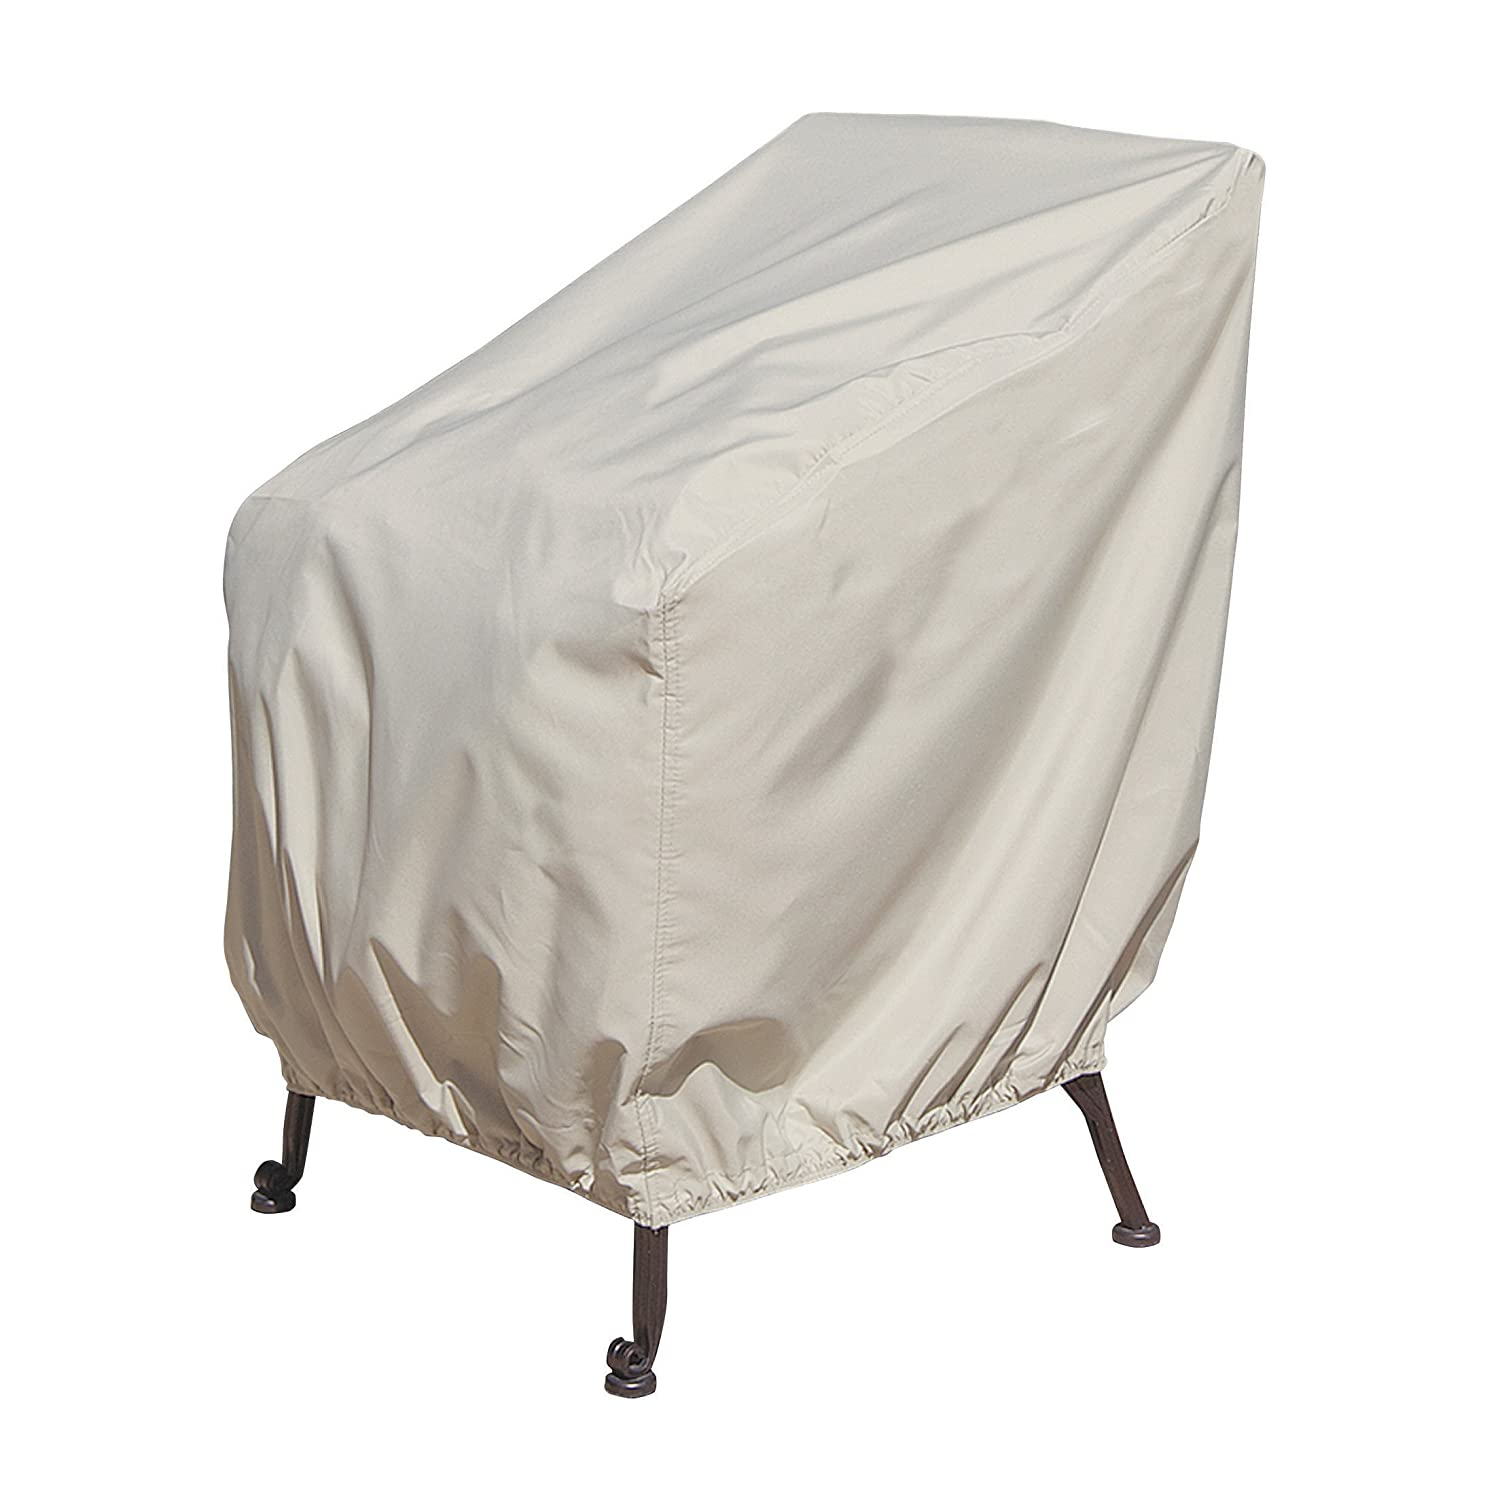 Fabulous Treasure Garden Protective Patio Furniture Cover Cp211 Curved Lounge Chair Protective Furniture Covers Download Free Architecture Designs Scobabritishbridgeorg